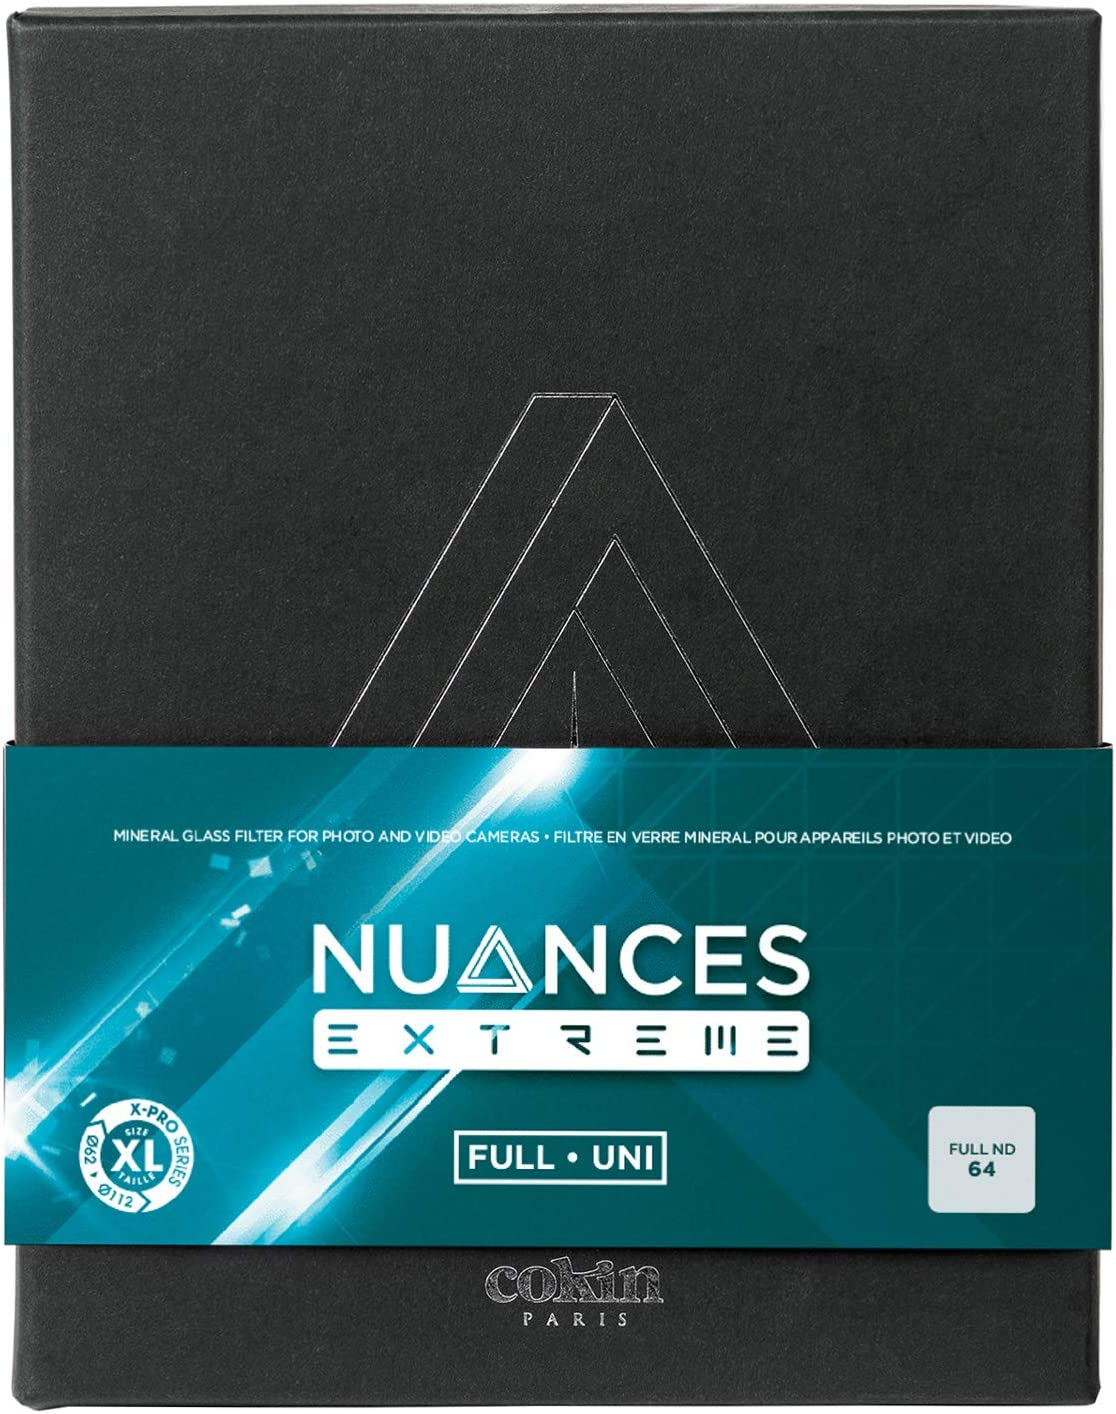 Cokin X-Pro Series Nuances Extreme Full ND 64 6 Stop Glass Filter